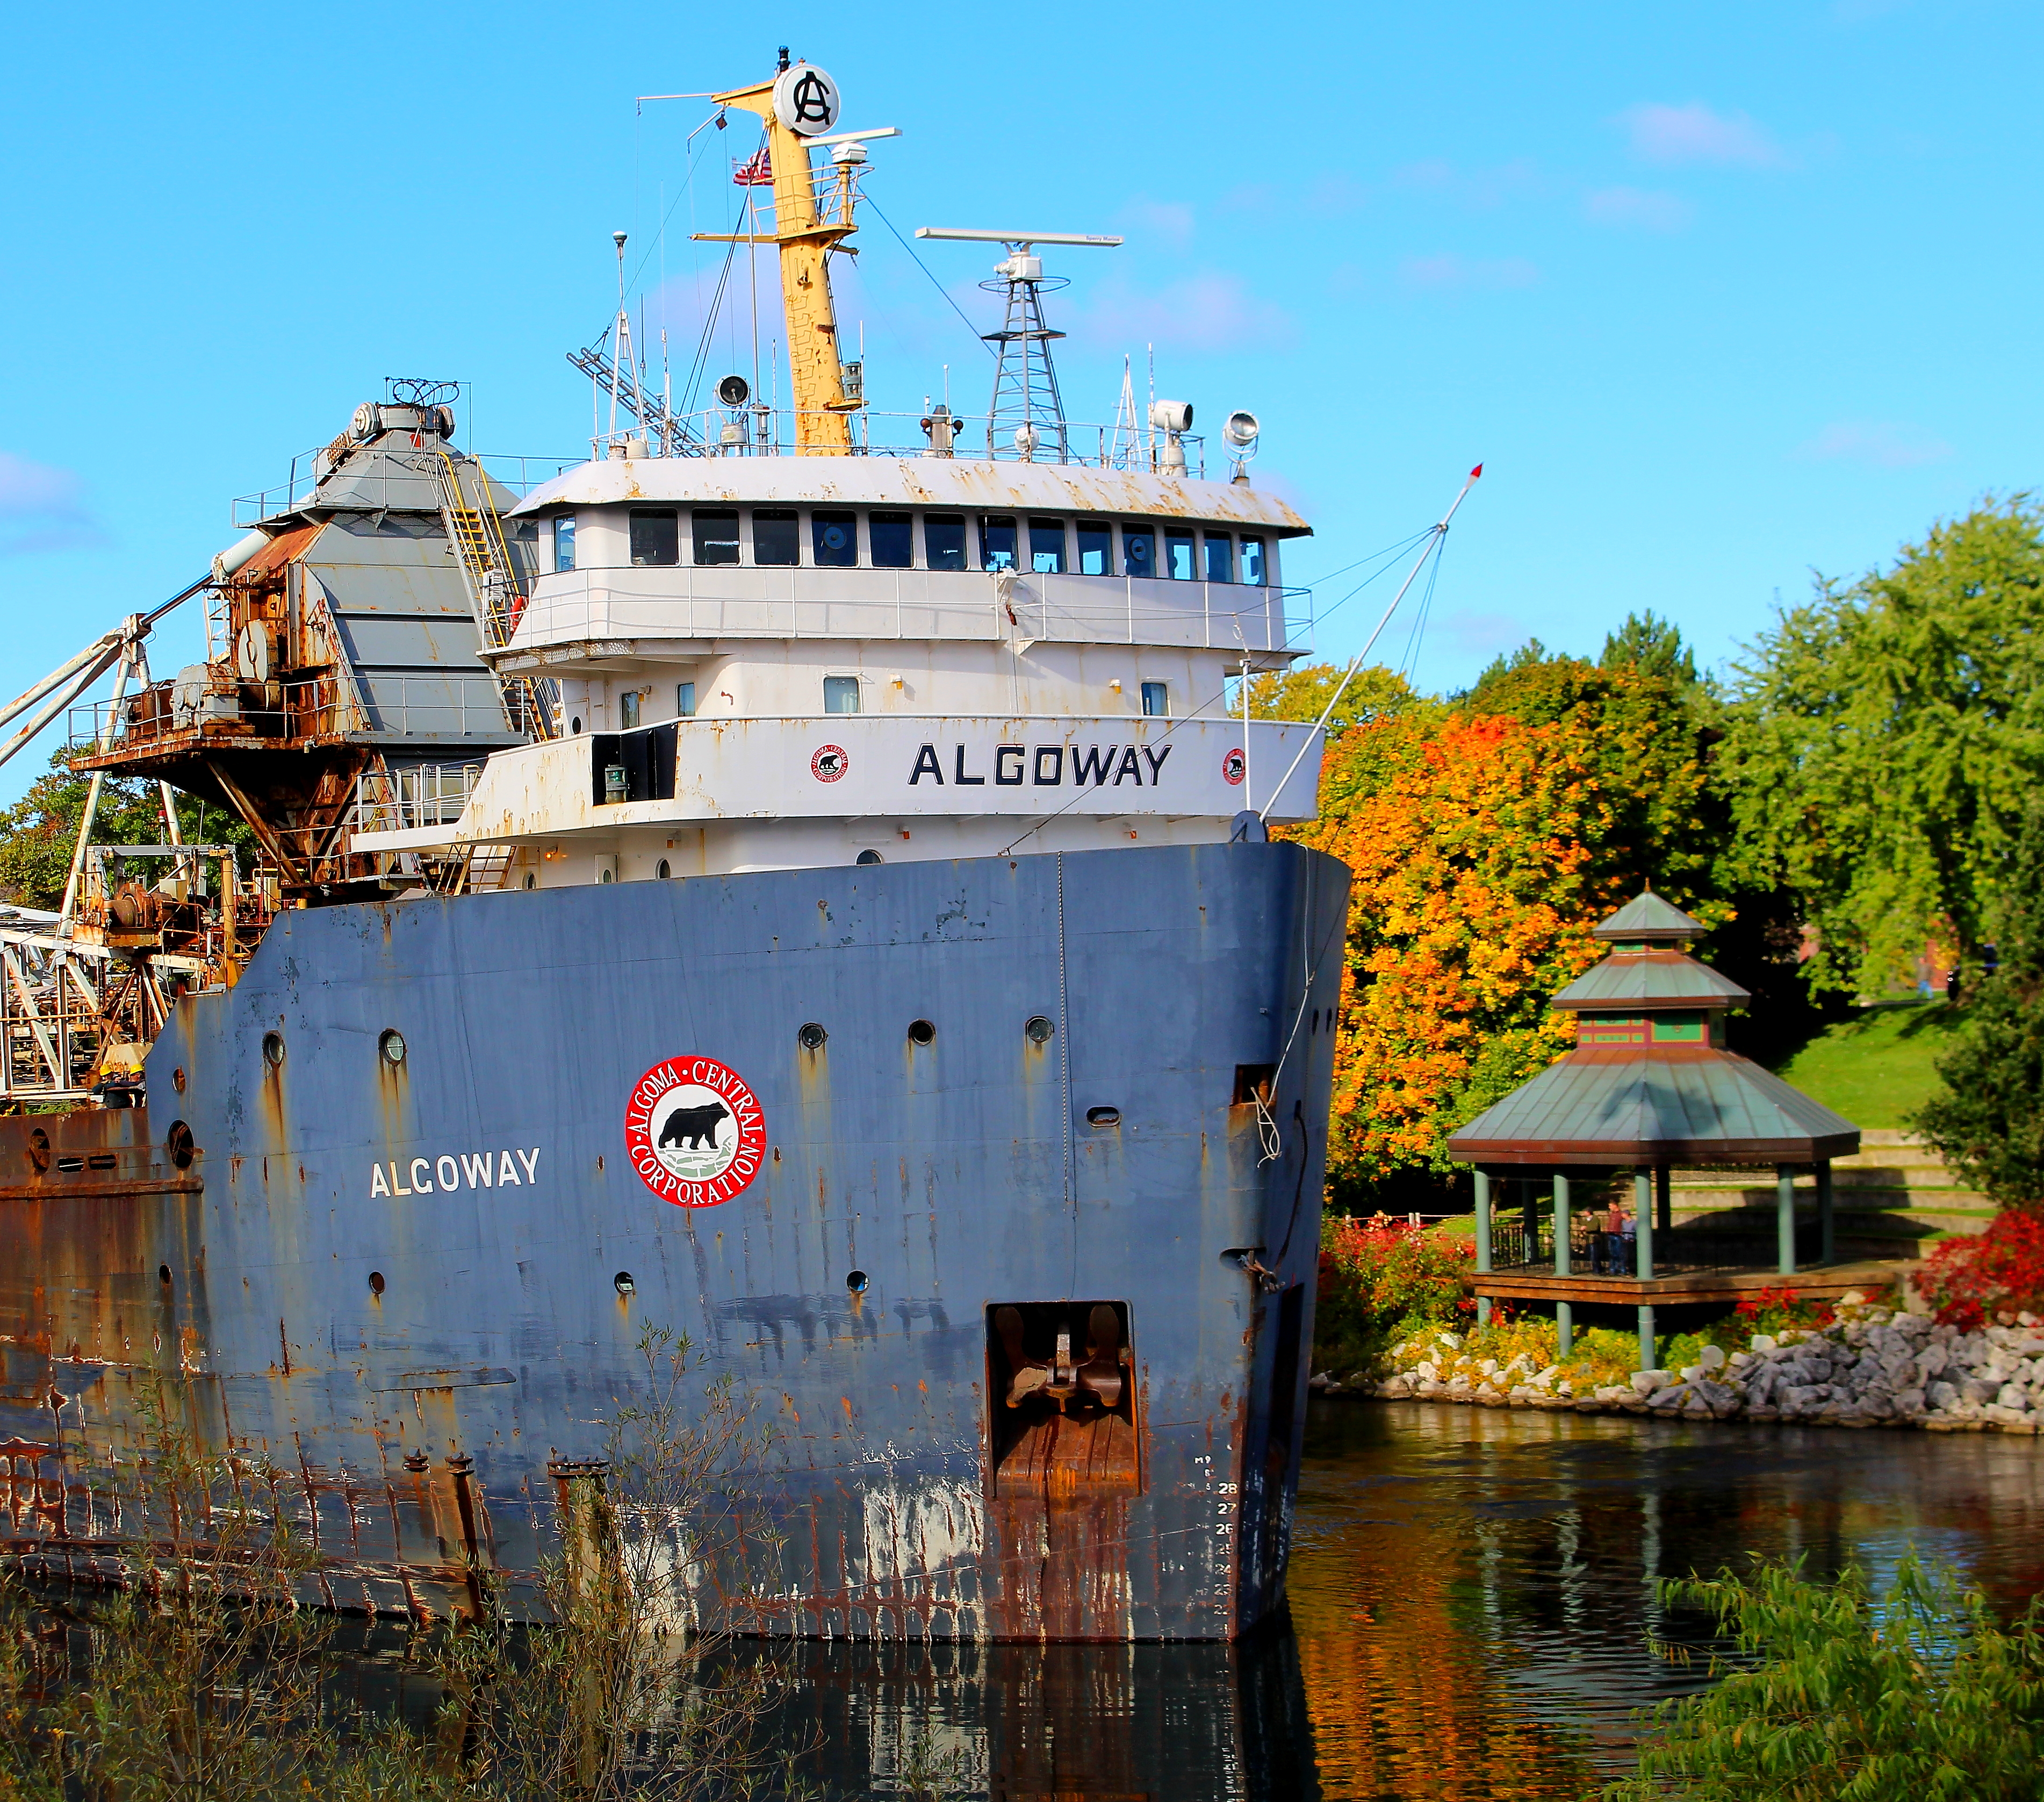 Freighter Algoway in the Manistee River Channel with the Bandshell in the background as the leaves are changing on the trees in Autumn